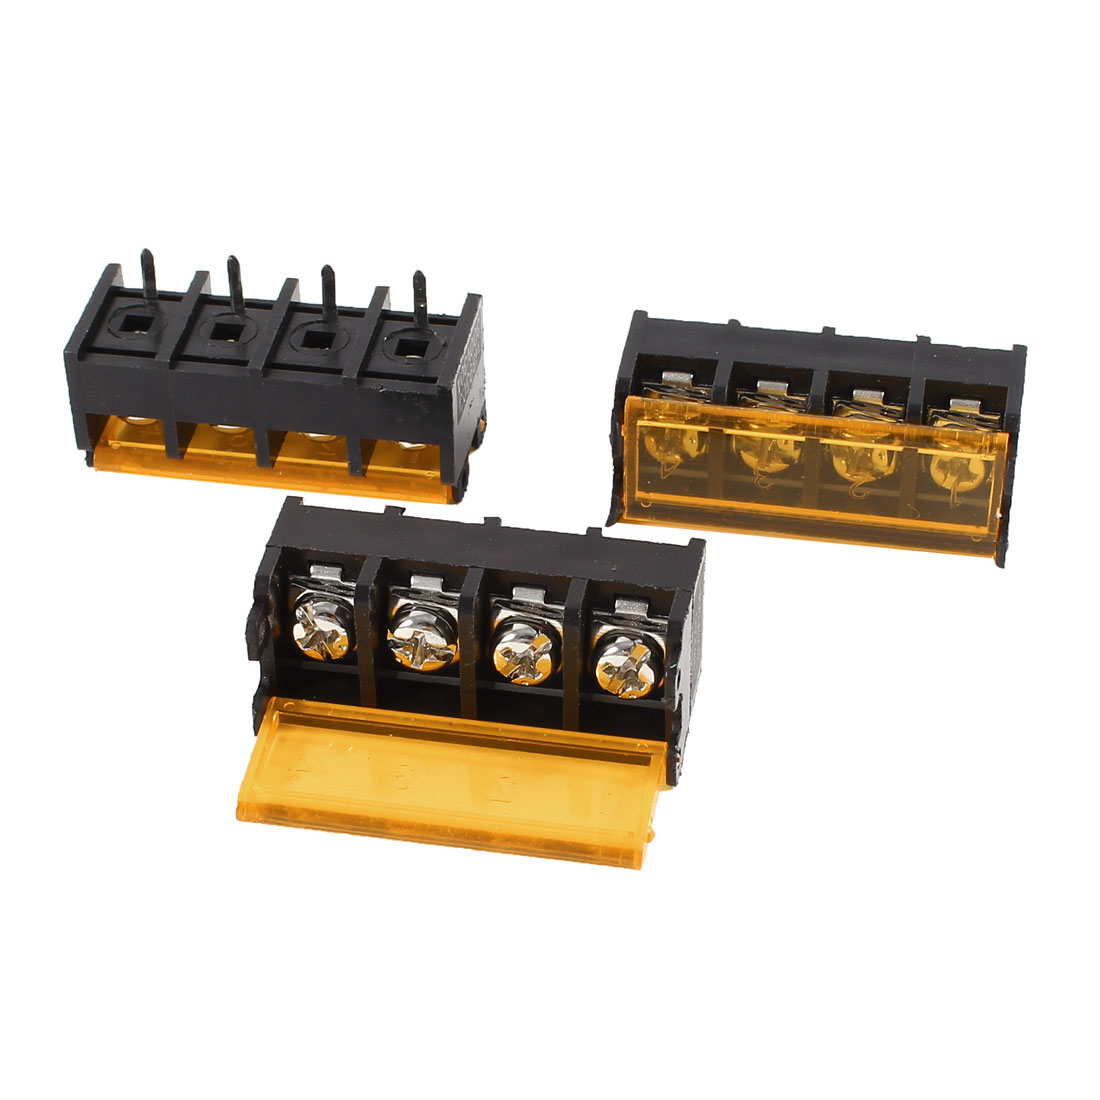 3 Pcs HB9500-4P 4P 9.5mm Pitch Wire Connector Screw Terminal Barrier Blocks 300V 30A w Cover